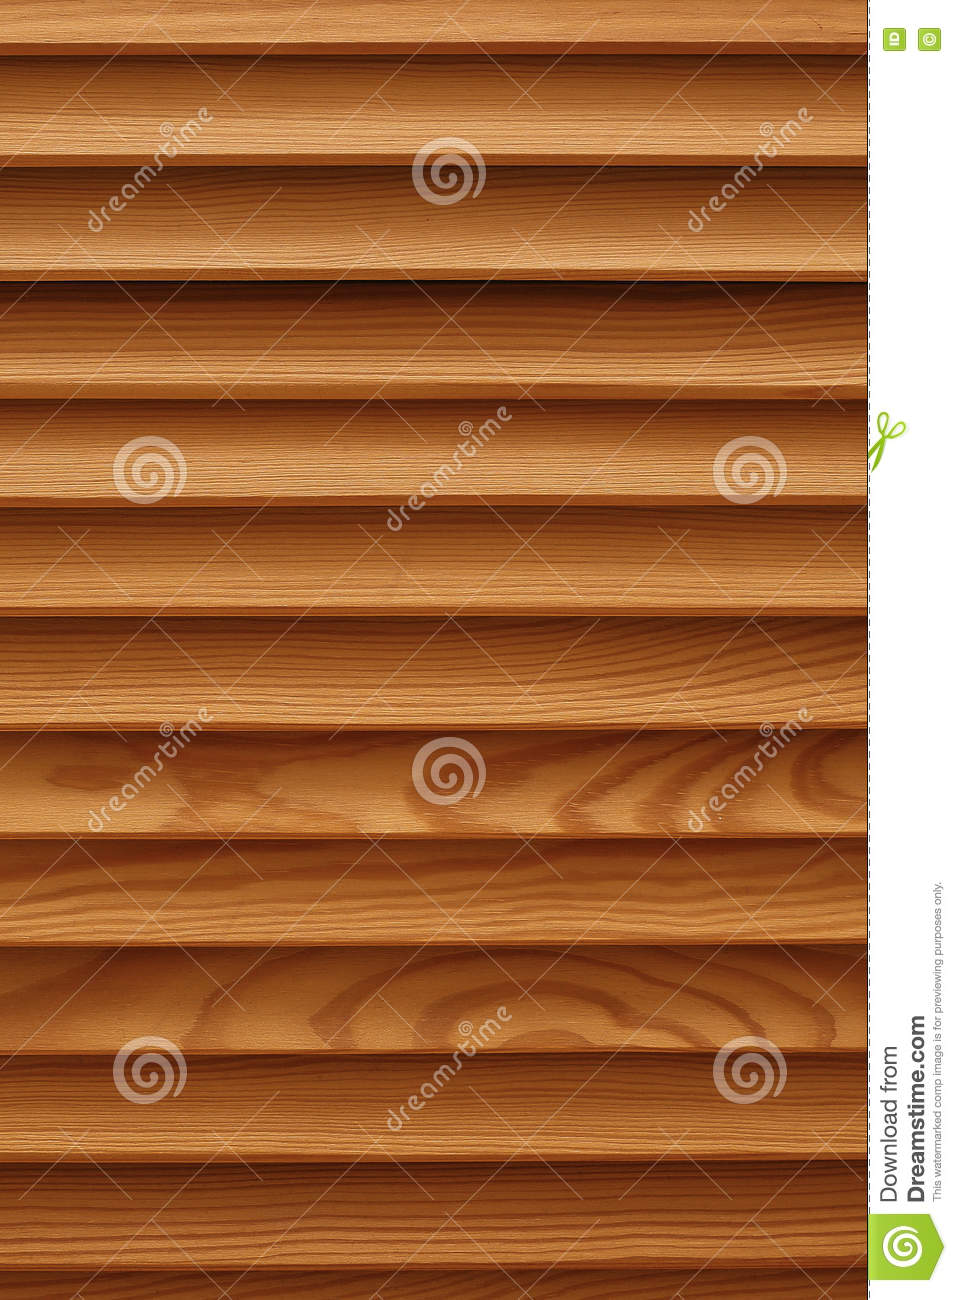 Wood Blinds Texture shield with a large number of parallel wooden logs texture. wood